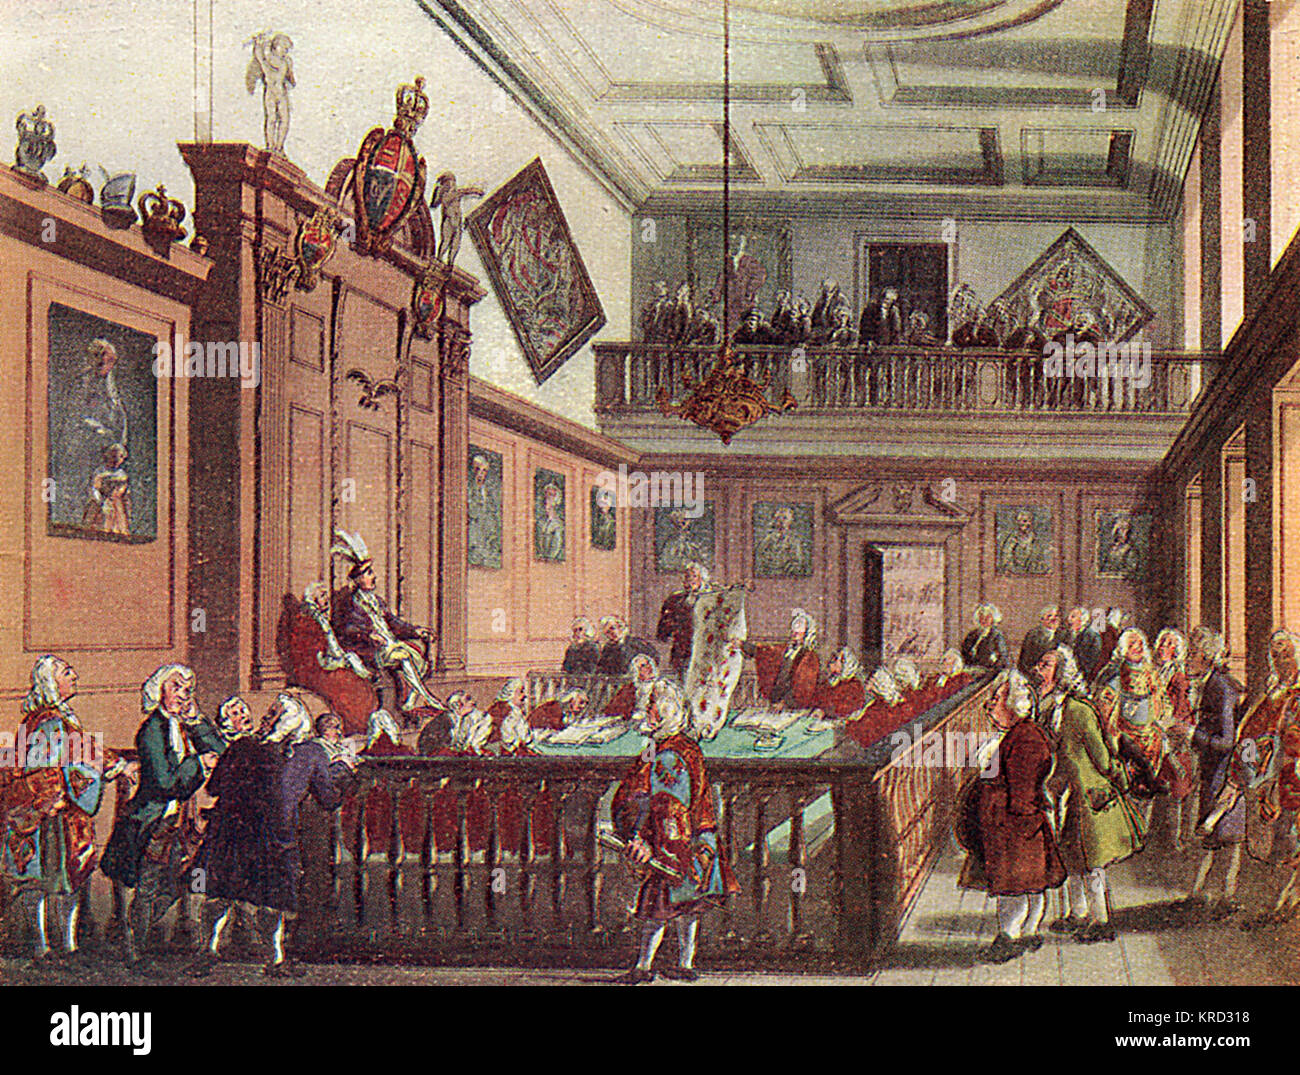 The Hall of The Heralds' College, or College of Arms, pictured in 1808.       Date: 1808 - Stock Image